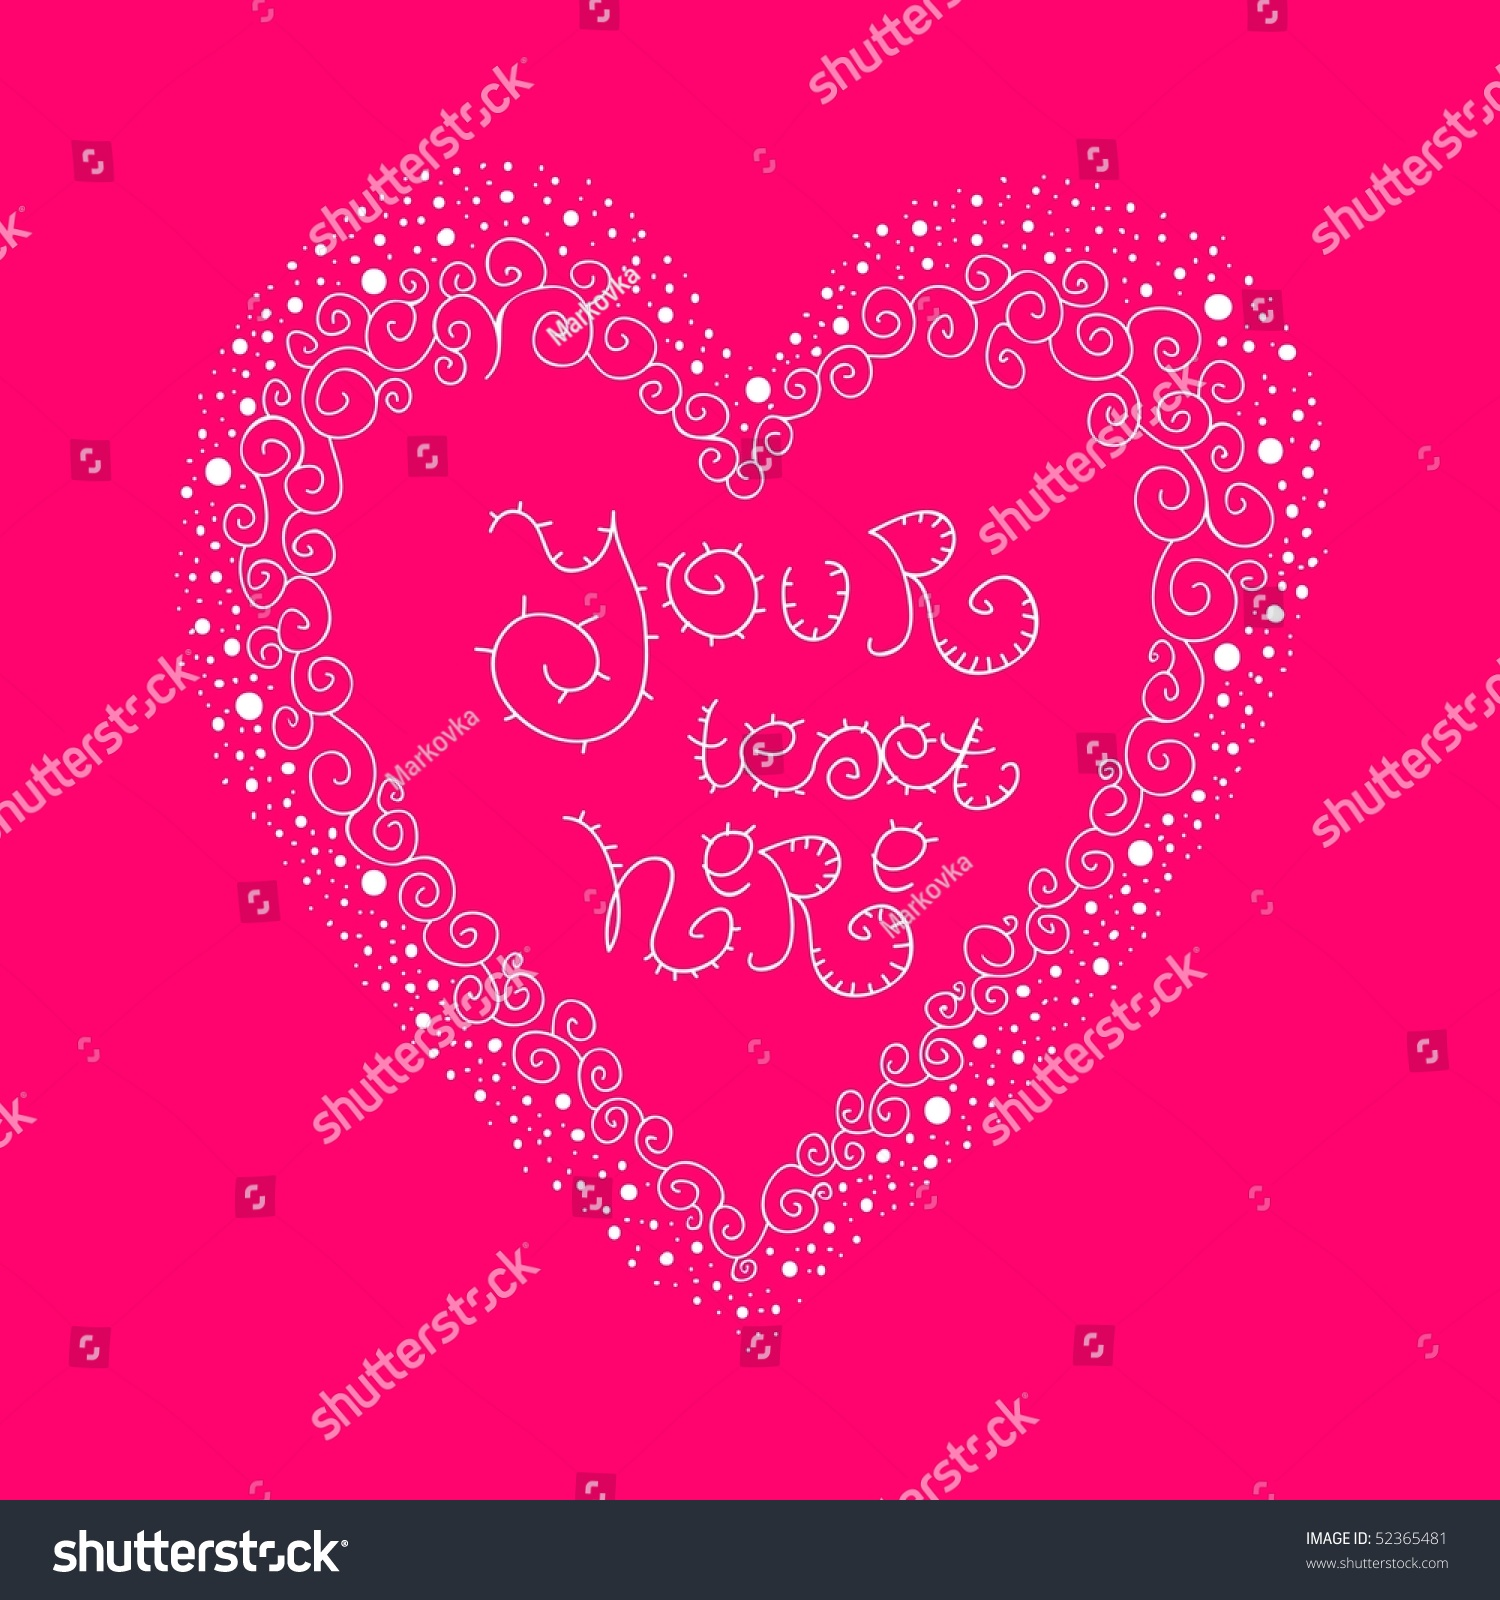 Vintage Heart With Place For Your Text Greeting Card Vector